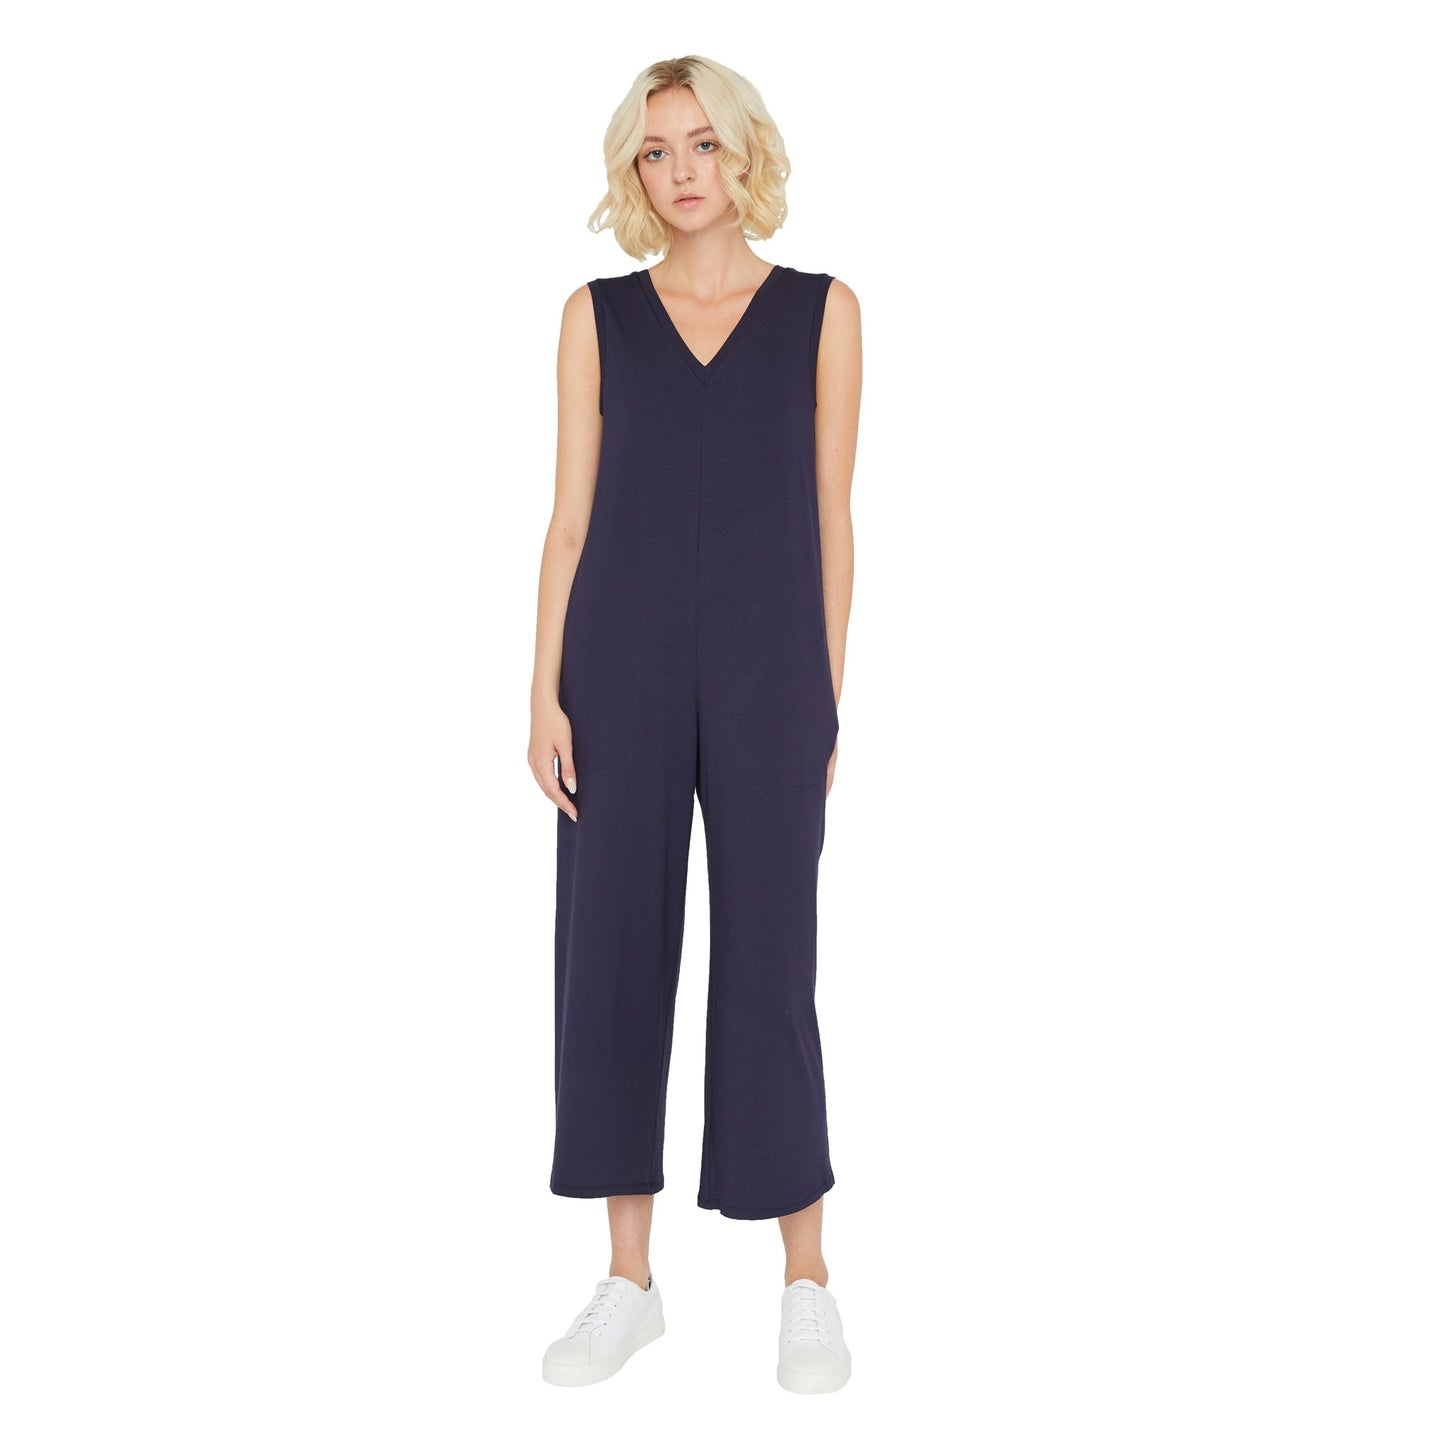 Sarah Liller | Rosaline Jumpsuit in True Navy